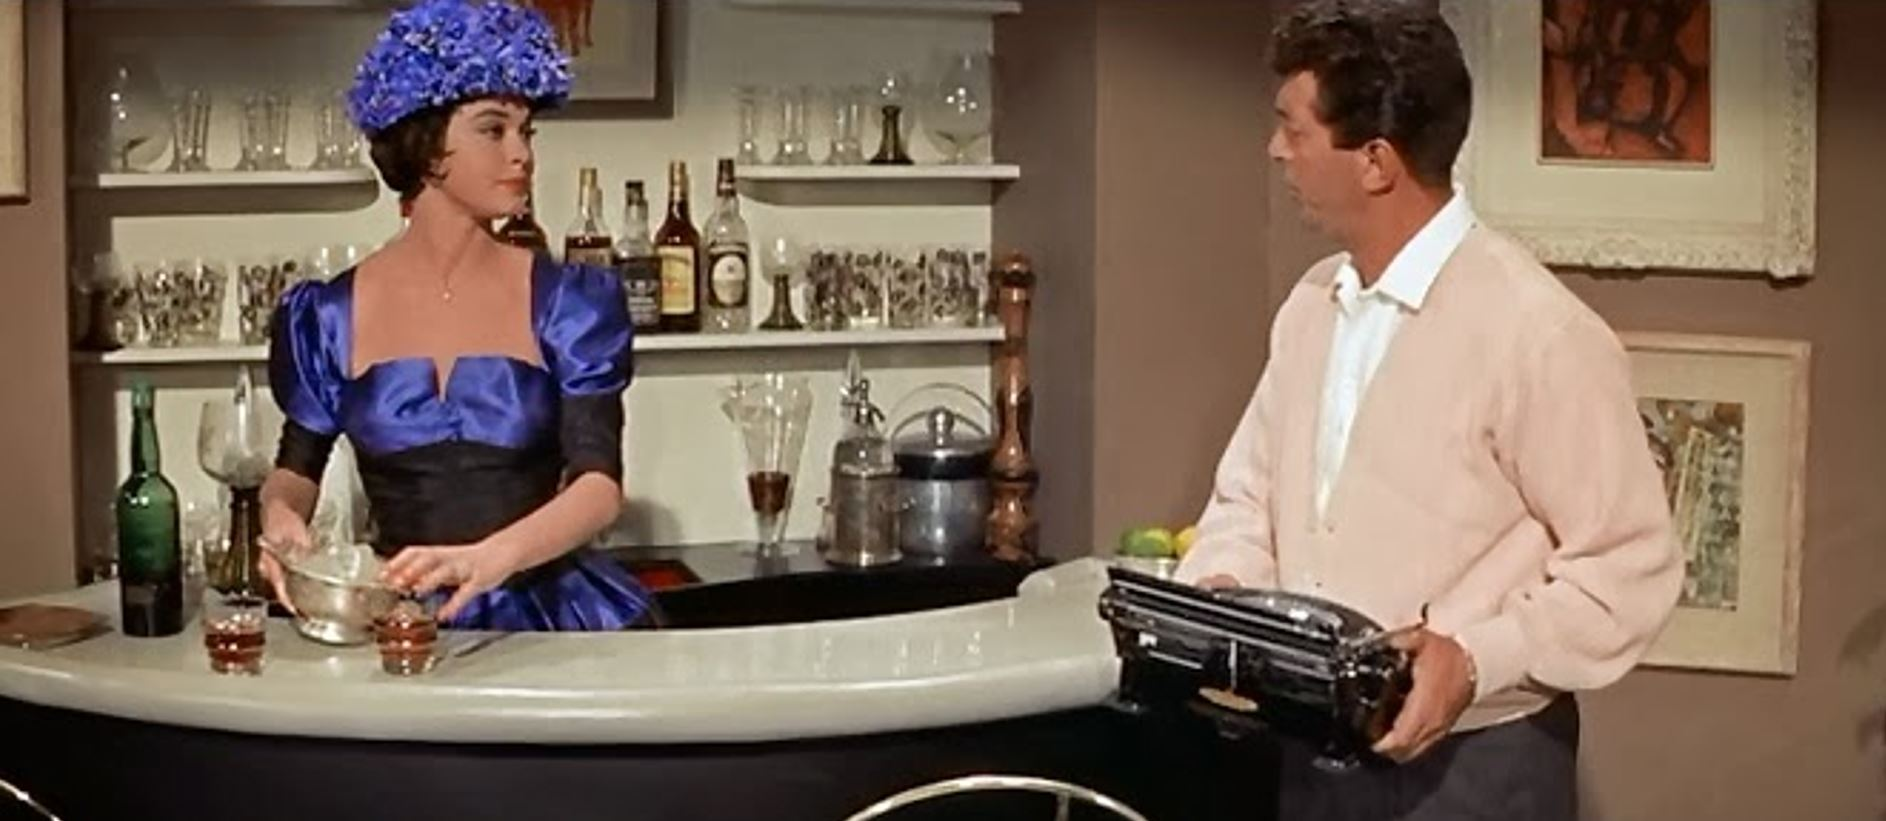 Dean Martin and Valerie Allen in Bells Are Ringing (1960)